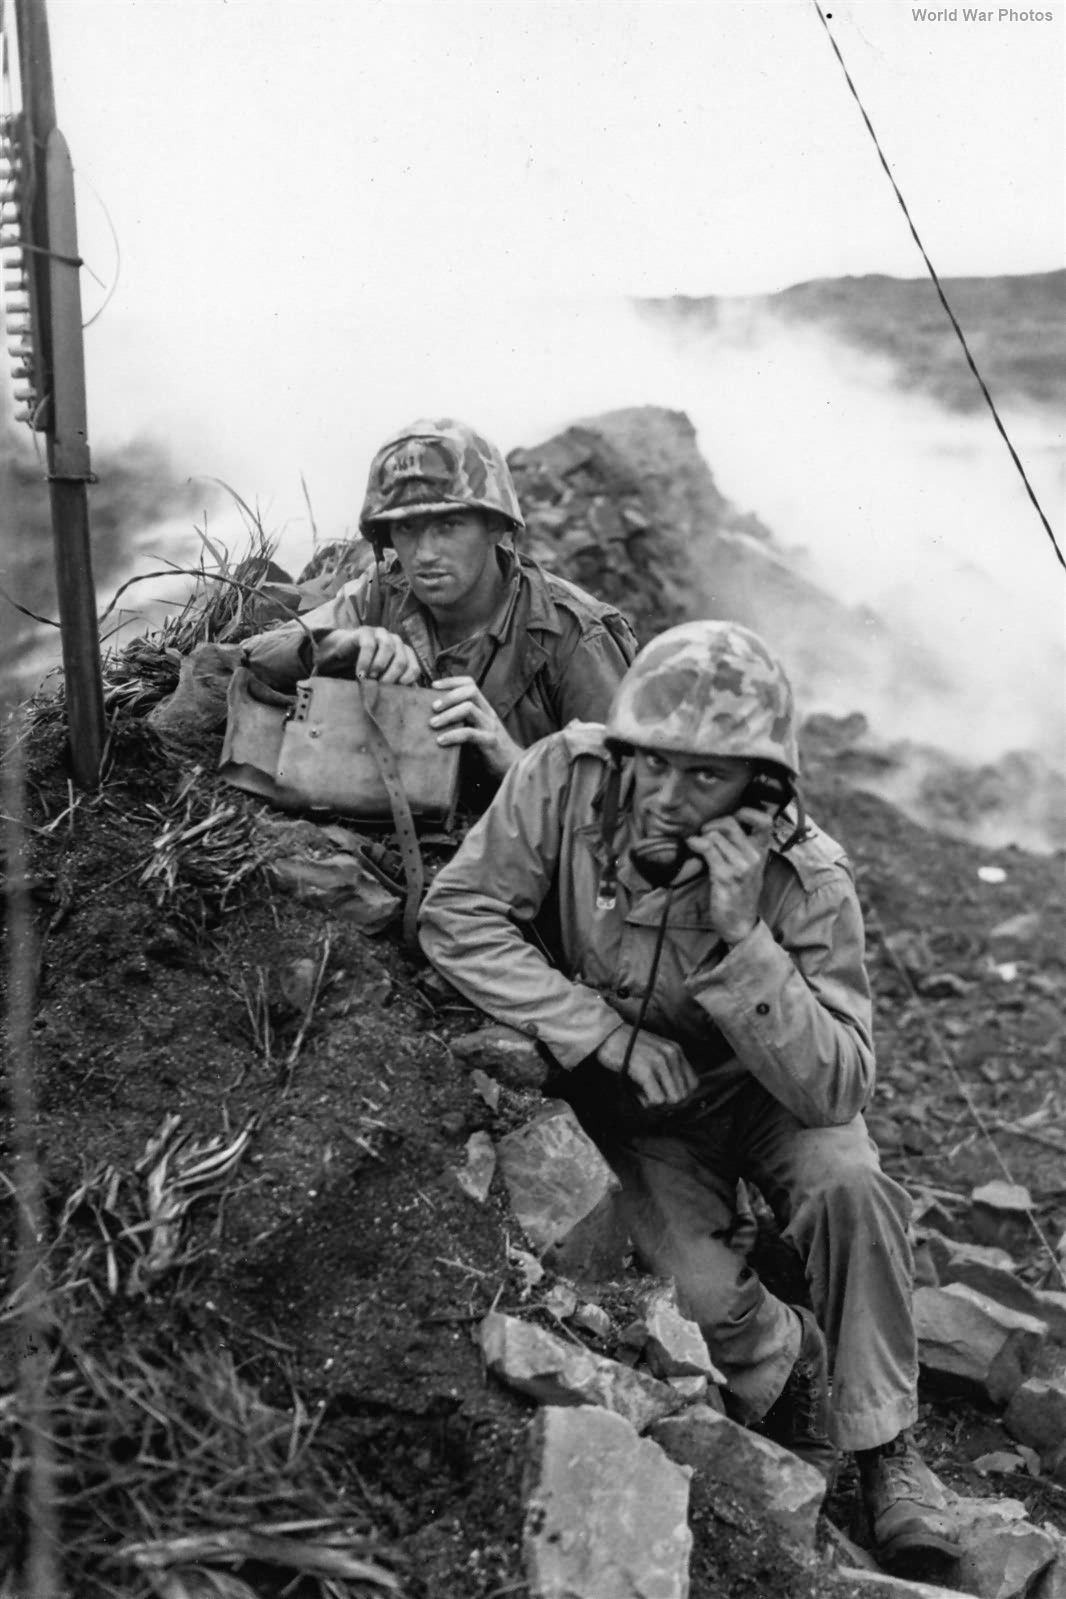 4th Marine Division Commo Team on Iwo Jima 4 March 1945